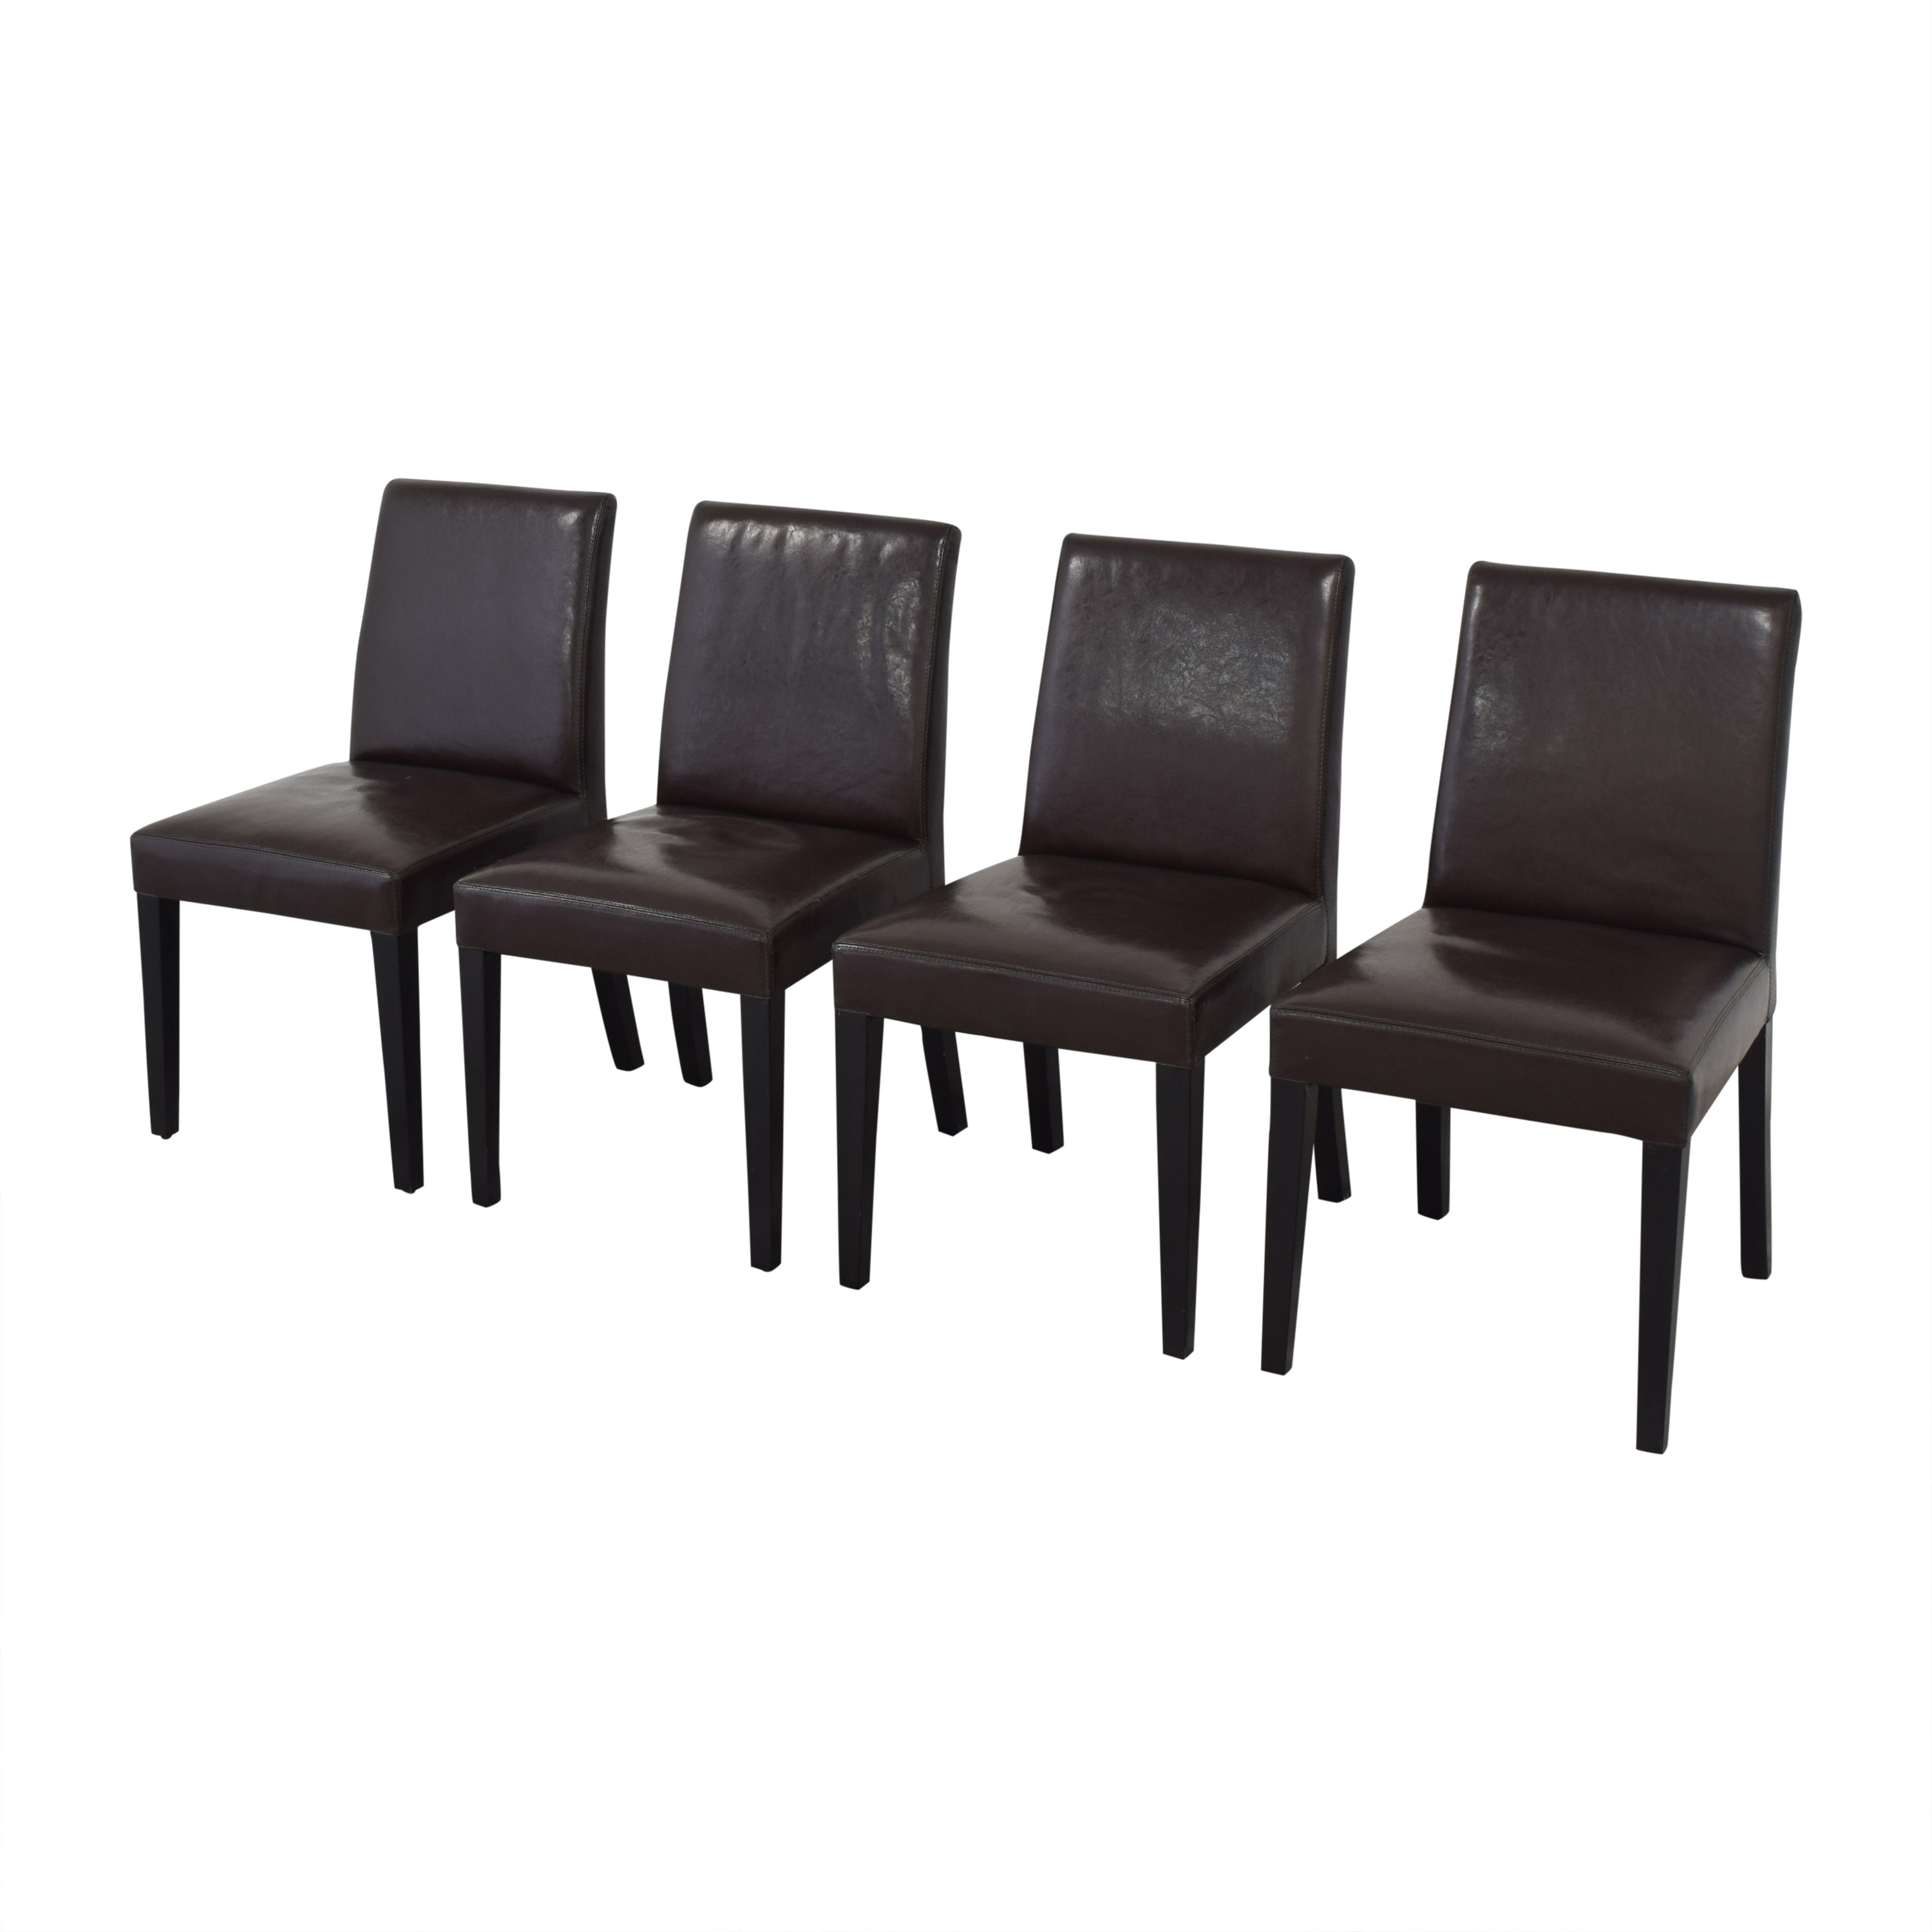 Crate & Barrel Crate & Barrel Pullman Side Chairs Dining Chairs